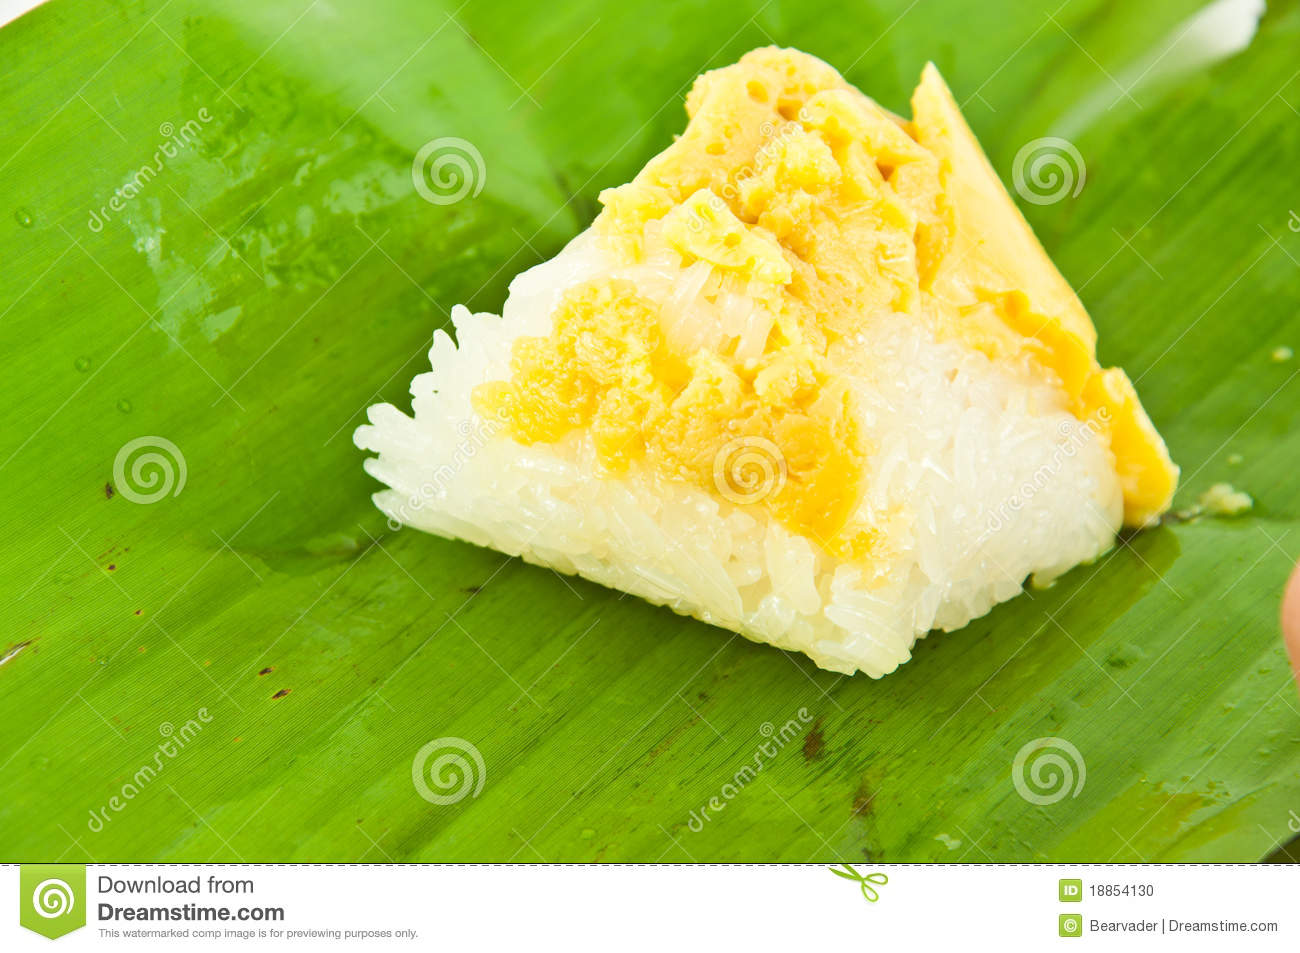 how to prepare sweet rice